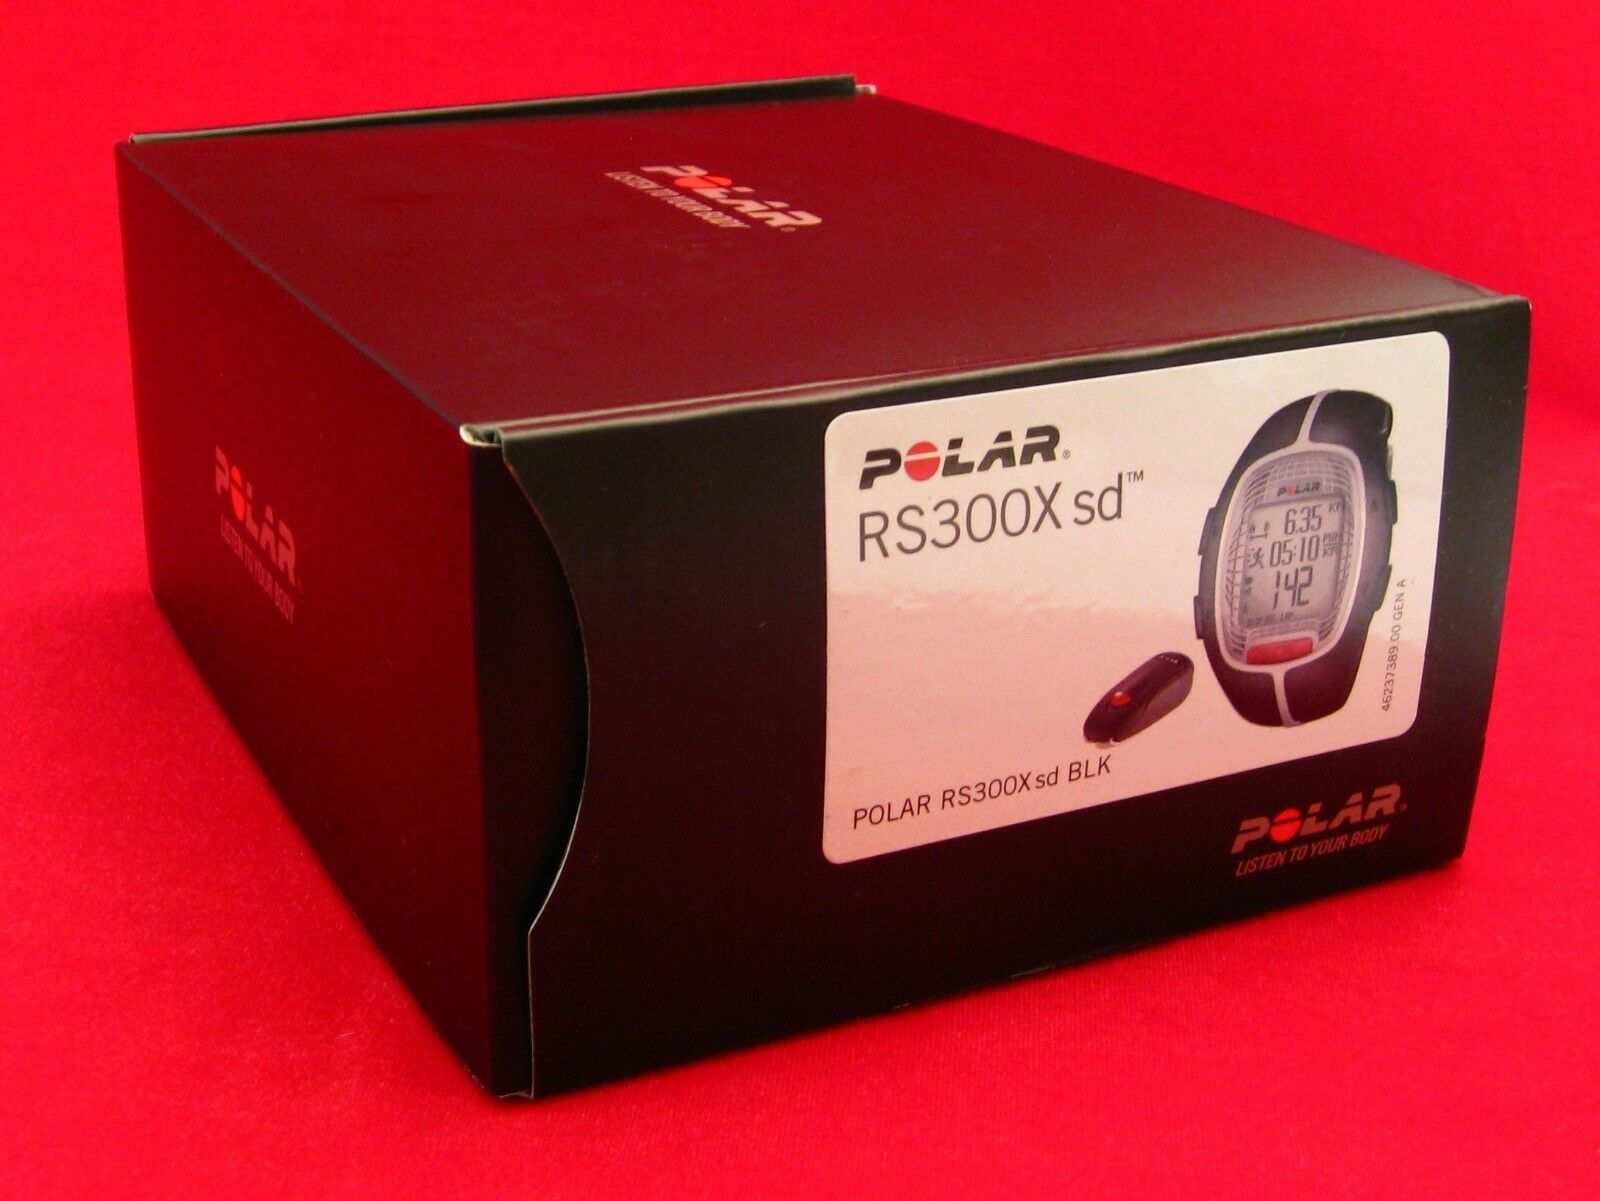 POLAR RS300X SD BLK HEART RATE MONITOR RUNNING BIKE EXERCSE FITNES FREE 90036631